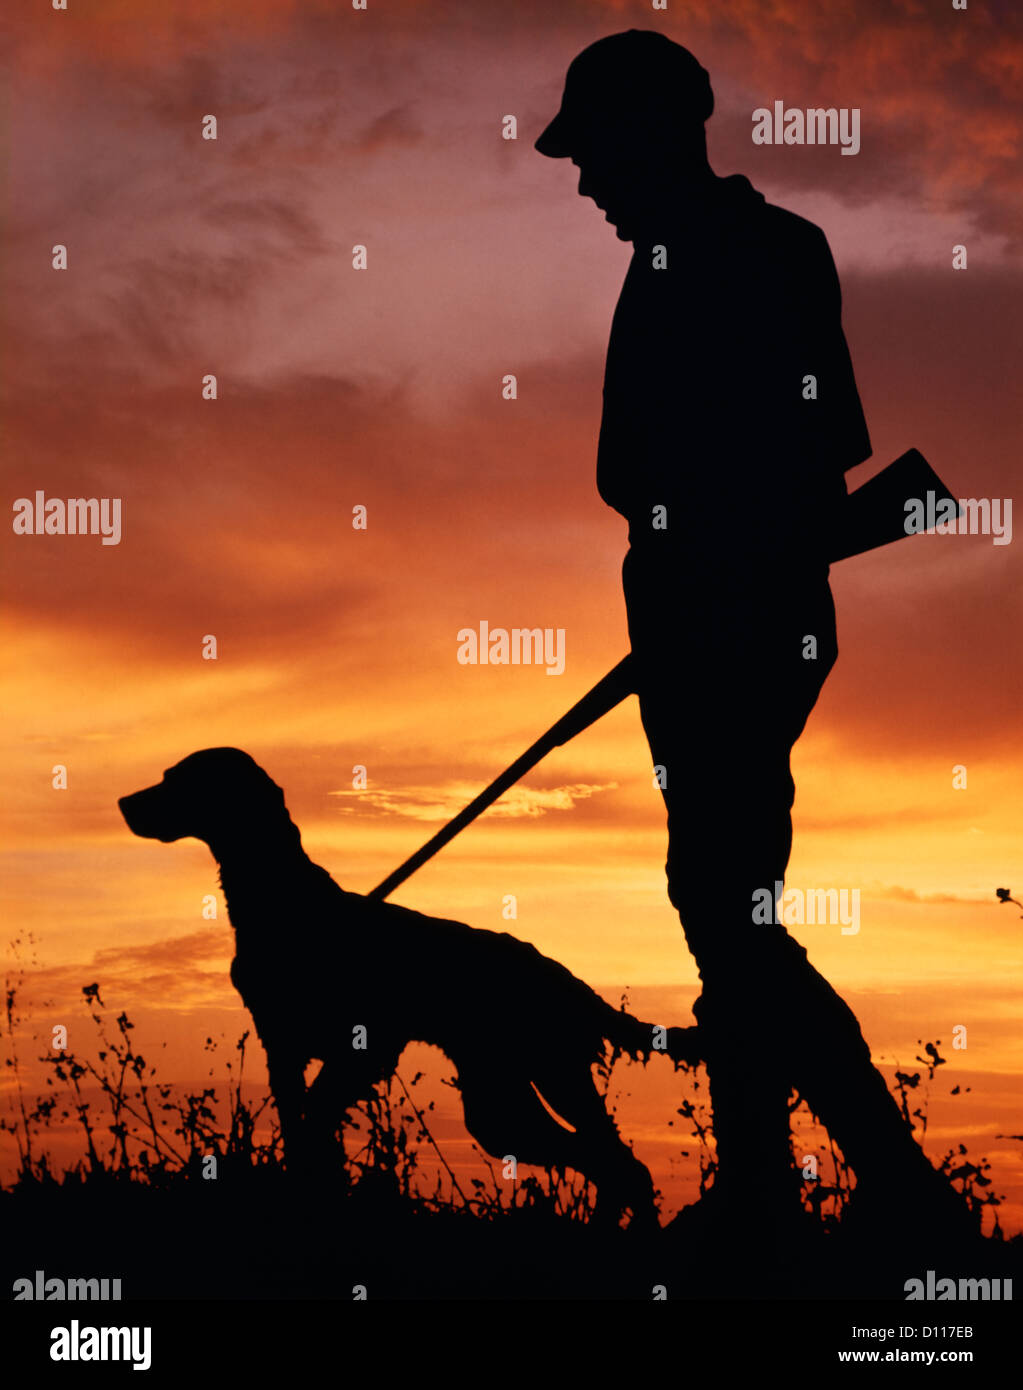 0e5078a0c4189 1960s SILHOUETTE OF MAN HUNTER WITH SHOTGUN AND ENGLISH SETTER DOG IN SUNSET